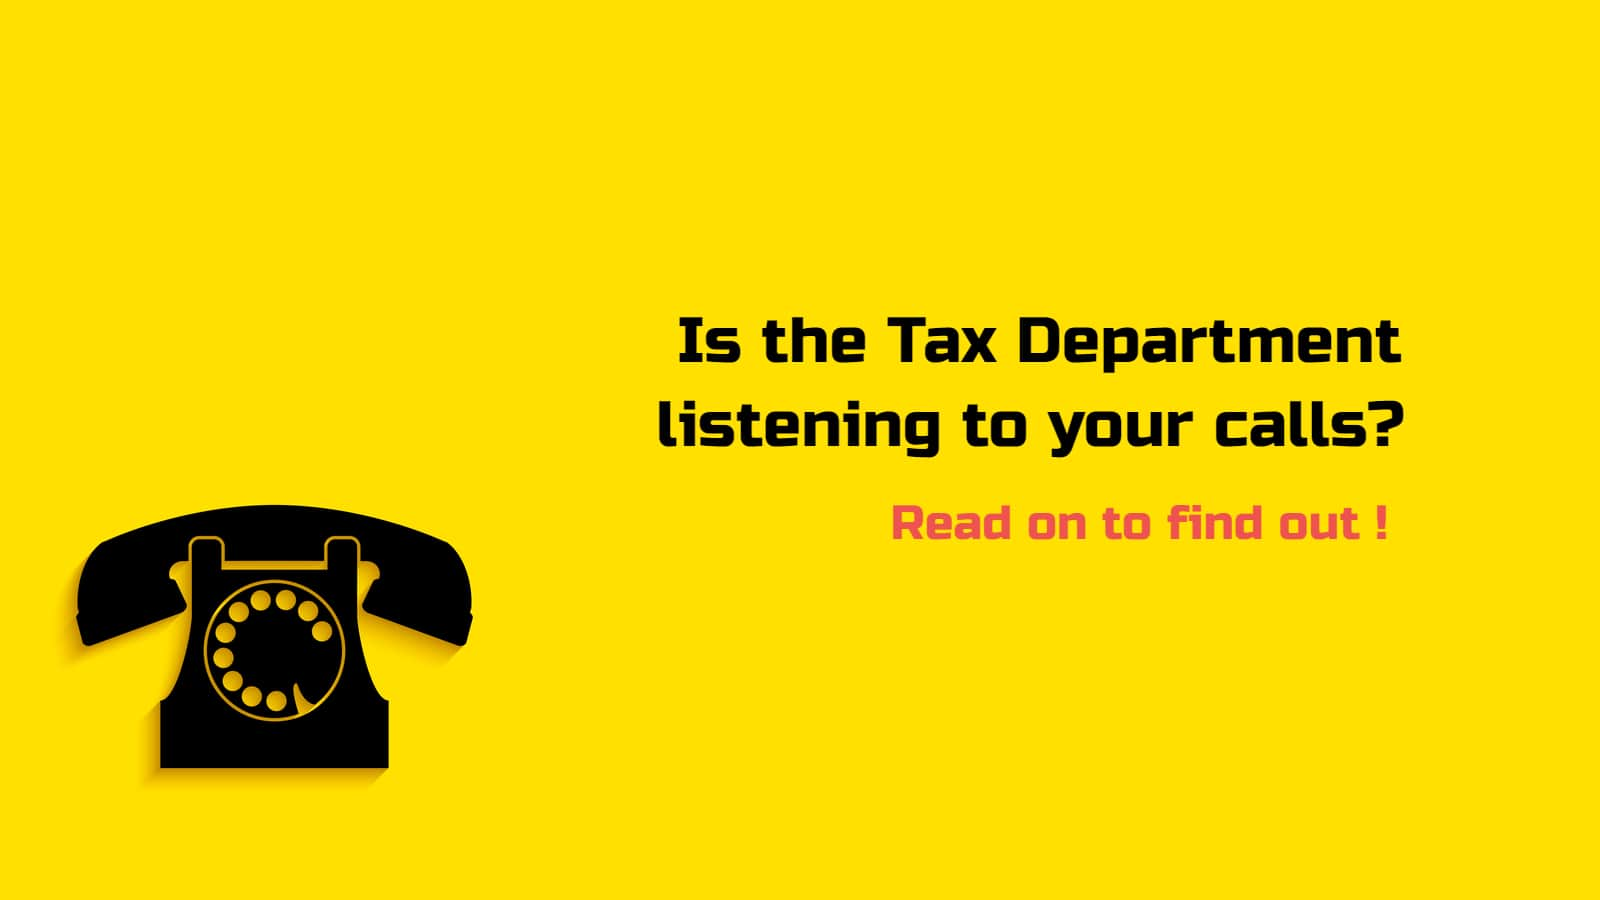 Is the Tax Department listening to your calls? Read on to find out!